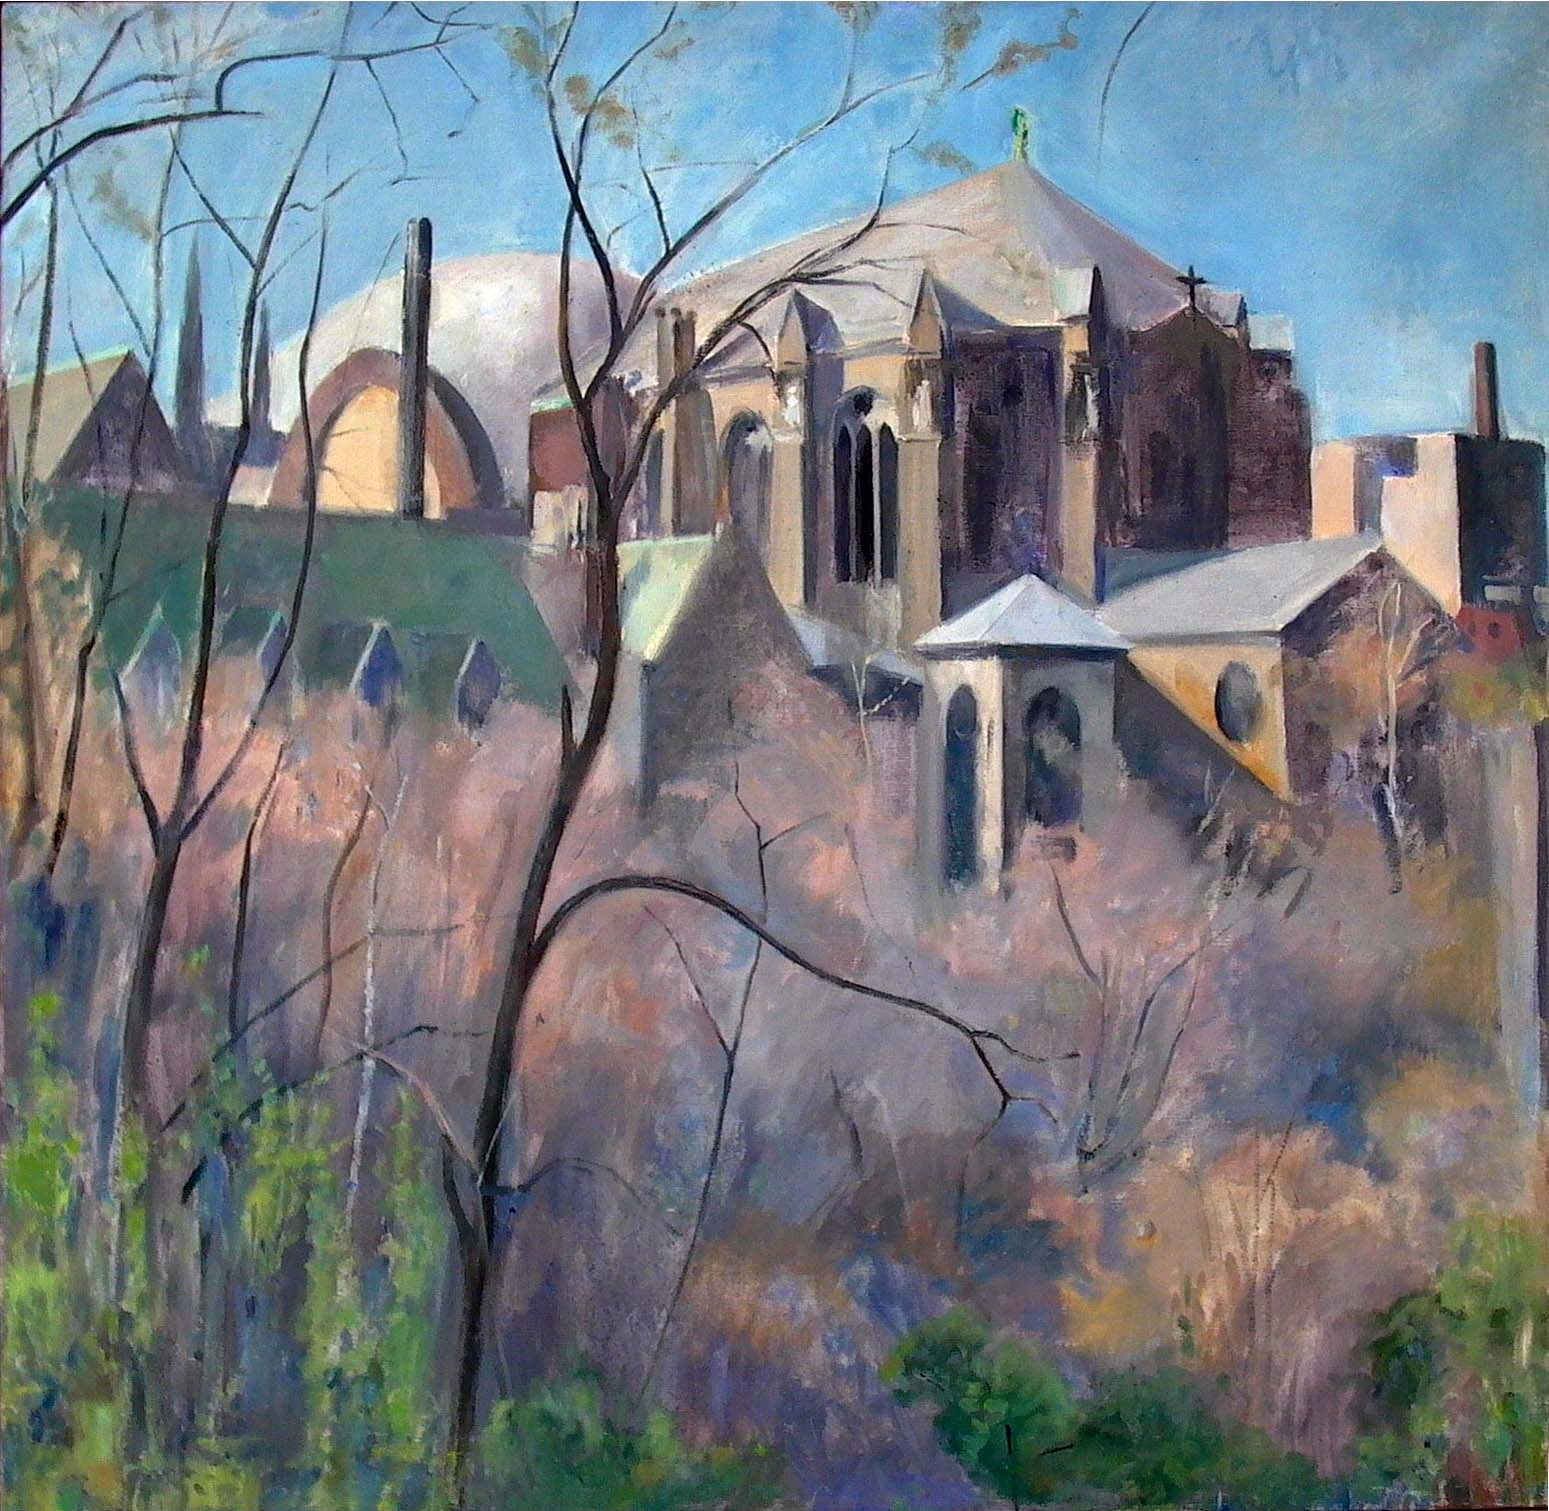 Saint John the Divine, oil on linen, 33 x 33 inches